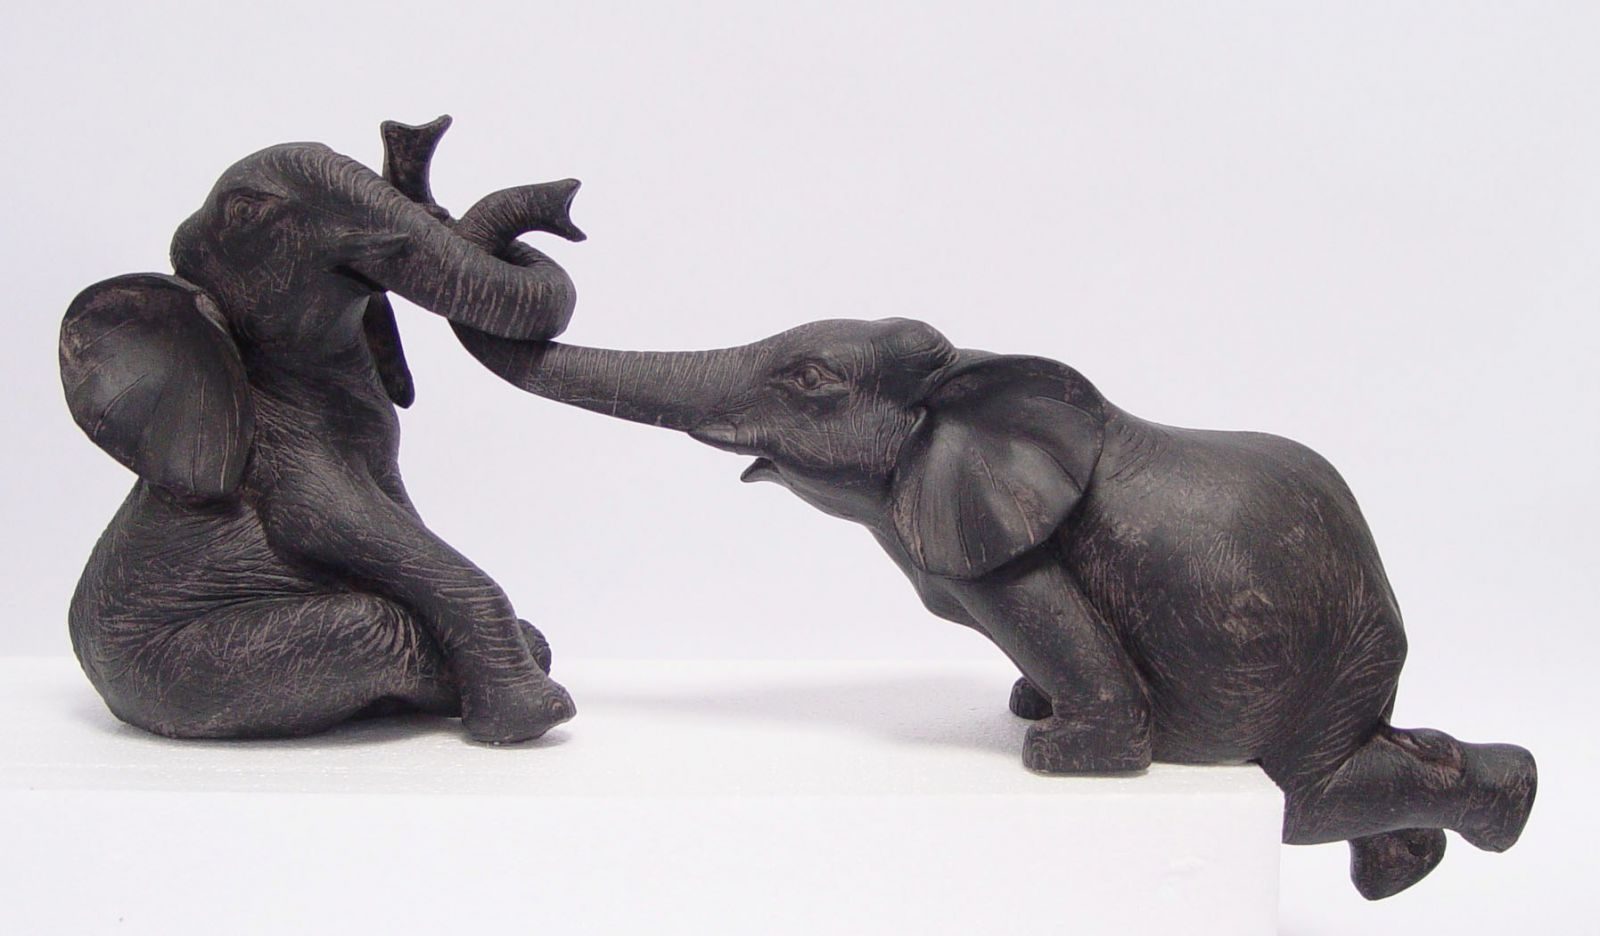 Polyresin statuettes of two elephants